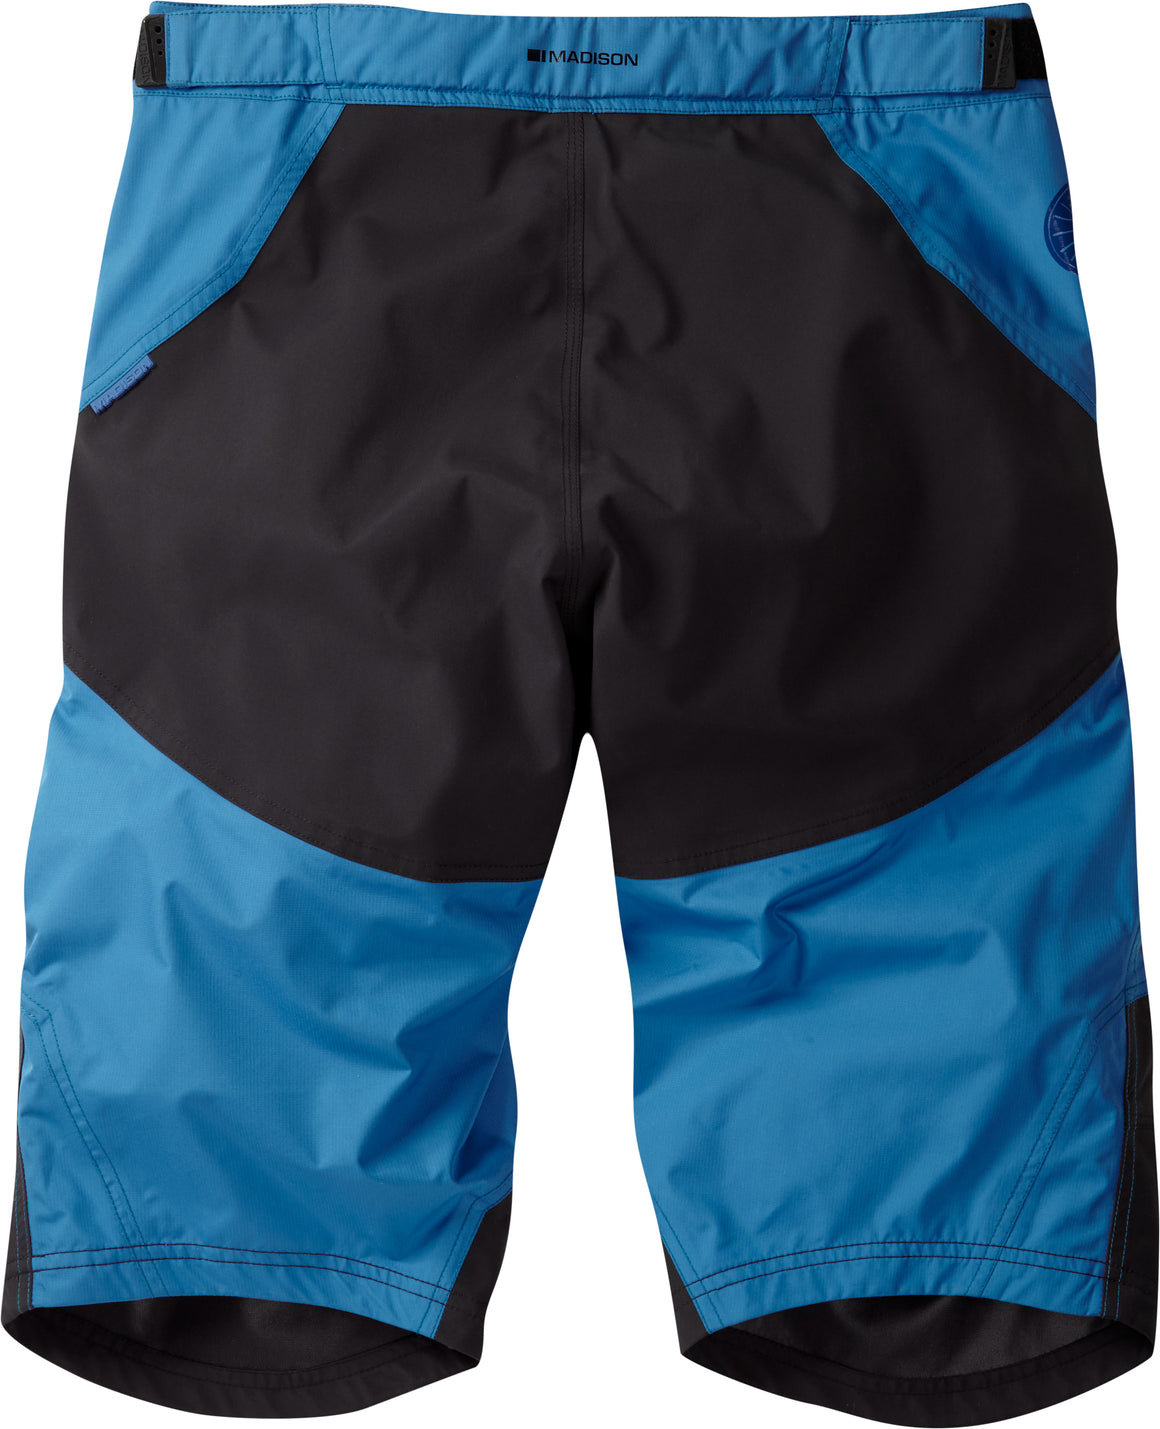 Madison DTE Men's Waterproof Shorts, Blue